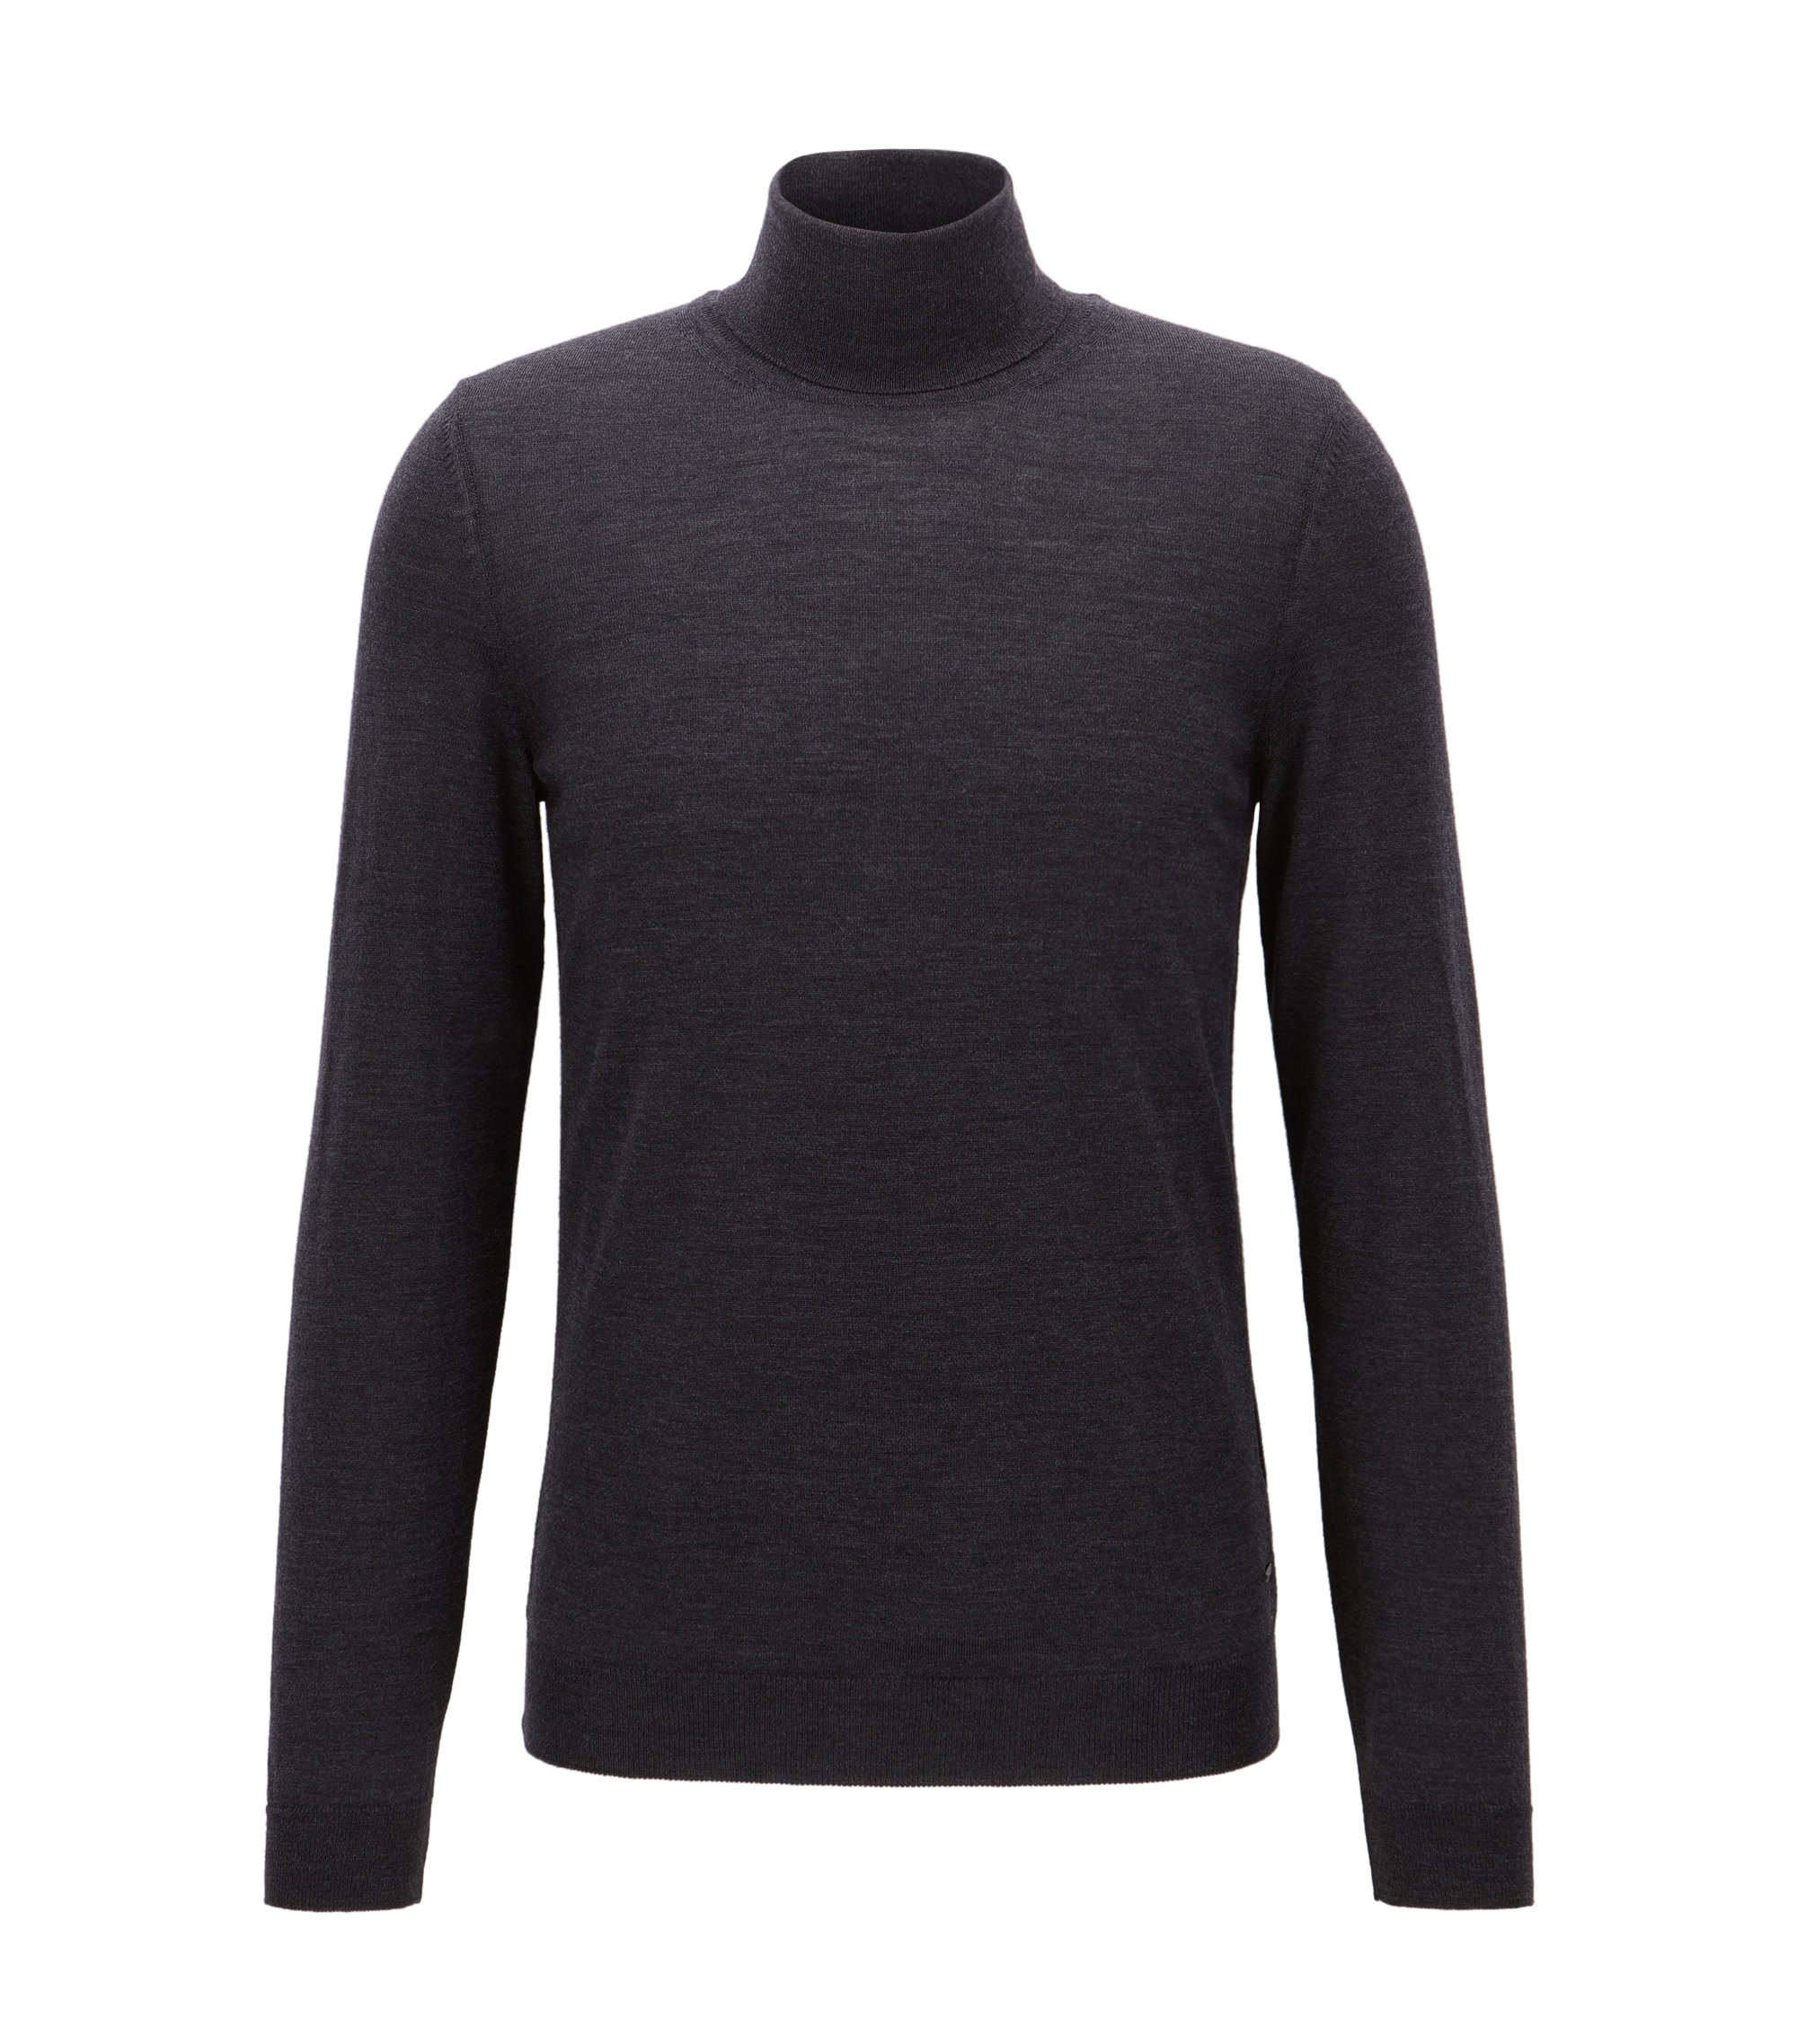 Merino Wool Turtleneck Sweater | Musso N, Open Grey